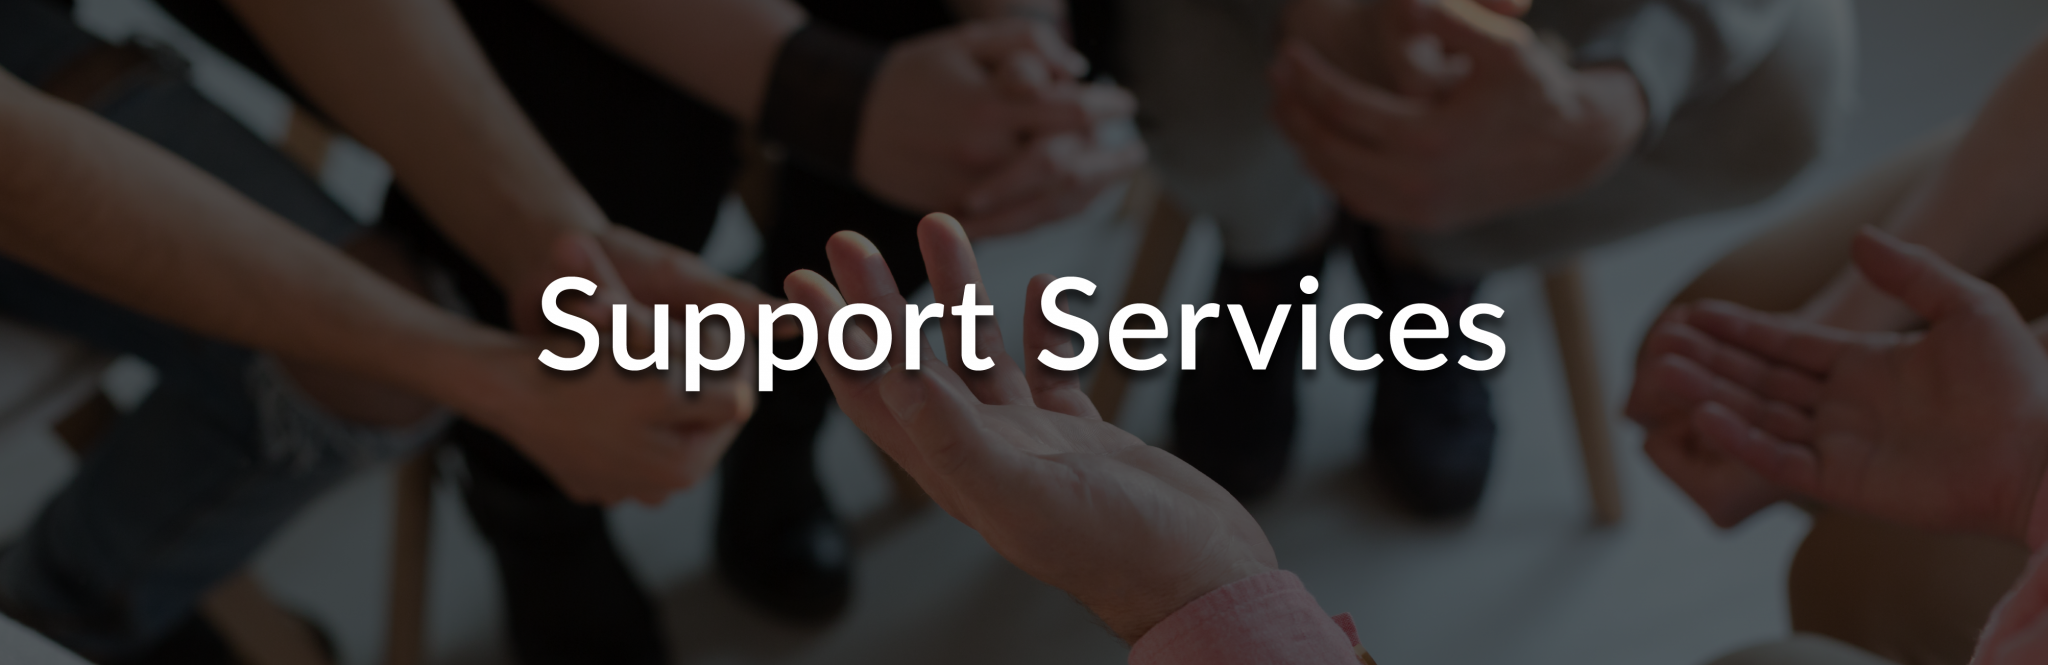 Website Headers-Support Services-04